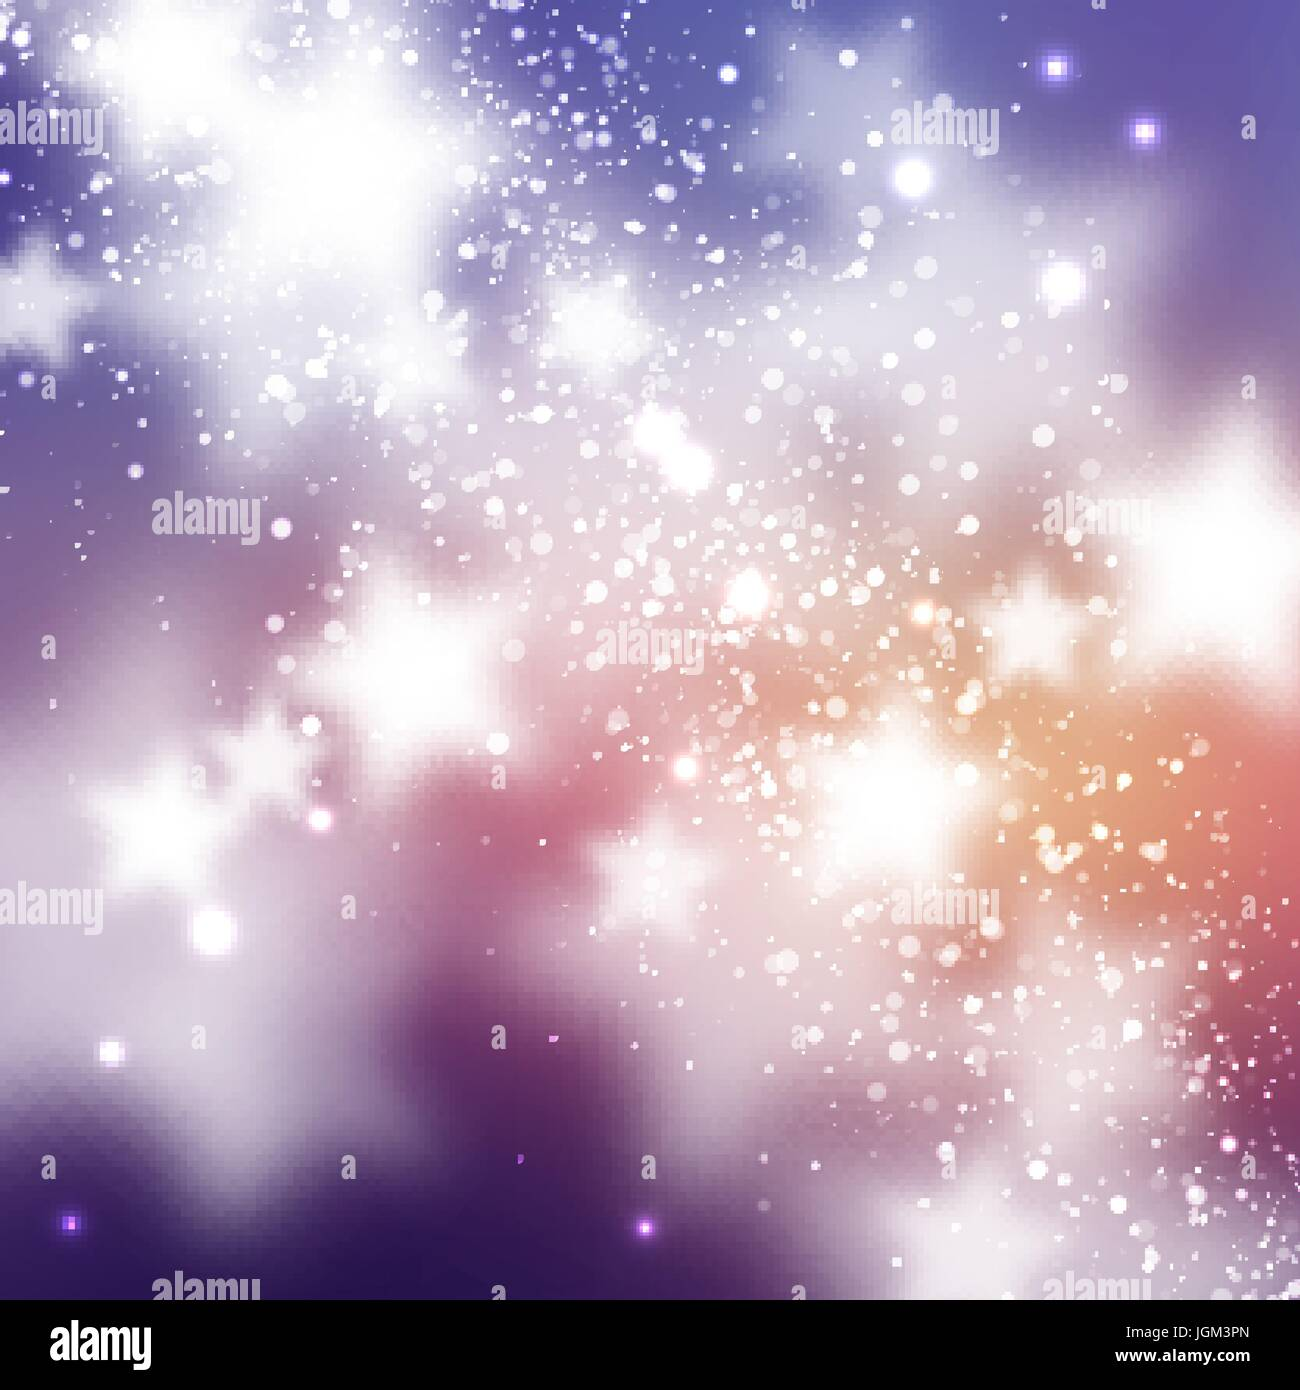 Starry background. Smooth and blured stars on blue and magenta background - Stock Image